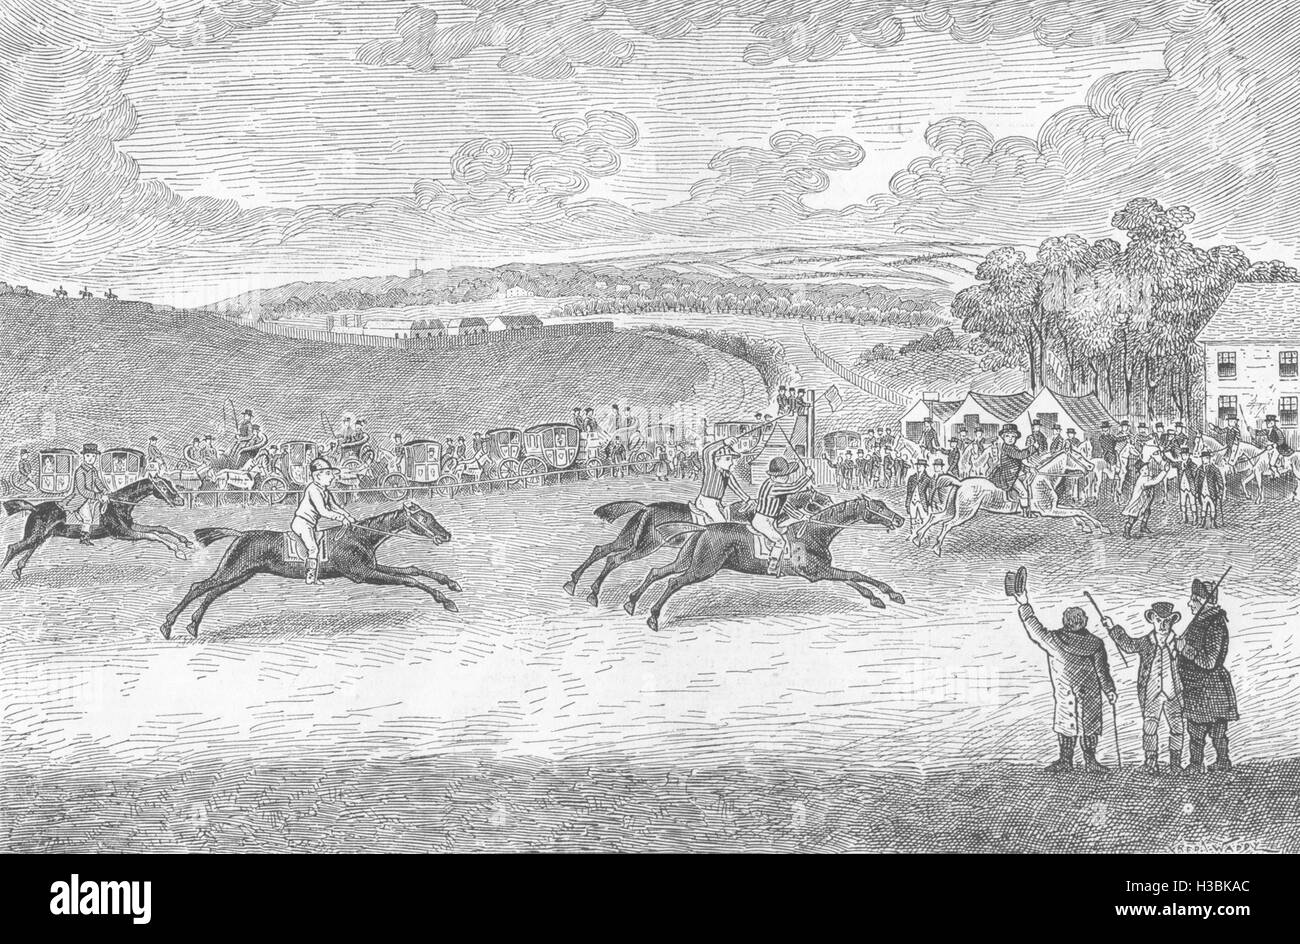 RACING The Race for the Derby in 1791 1885. The Graphic - Stock Image